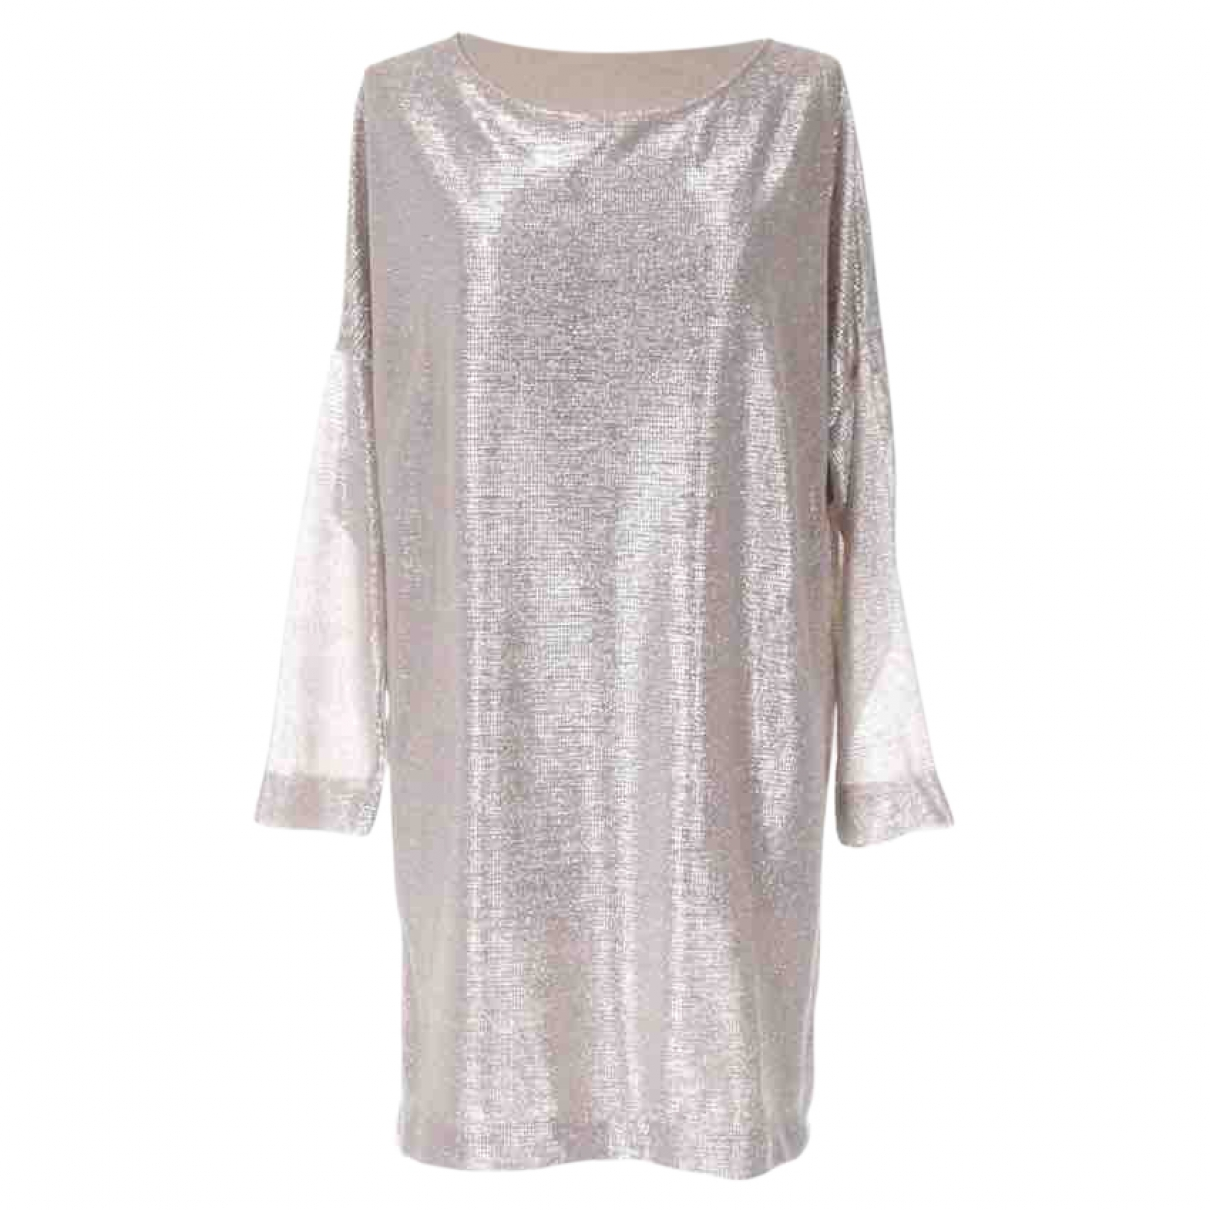 Hôtel Particulier \N Silver Glitter dress for Women 38 FR